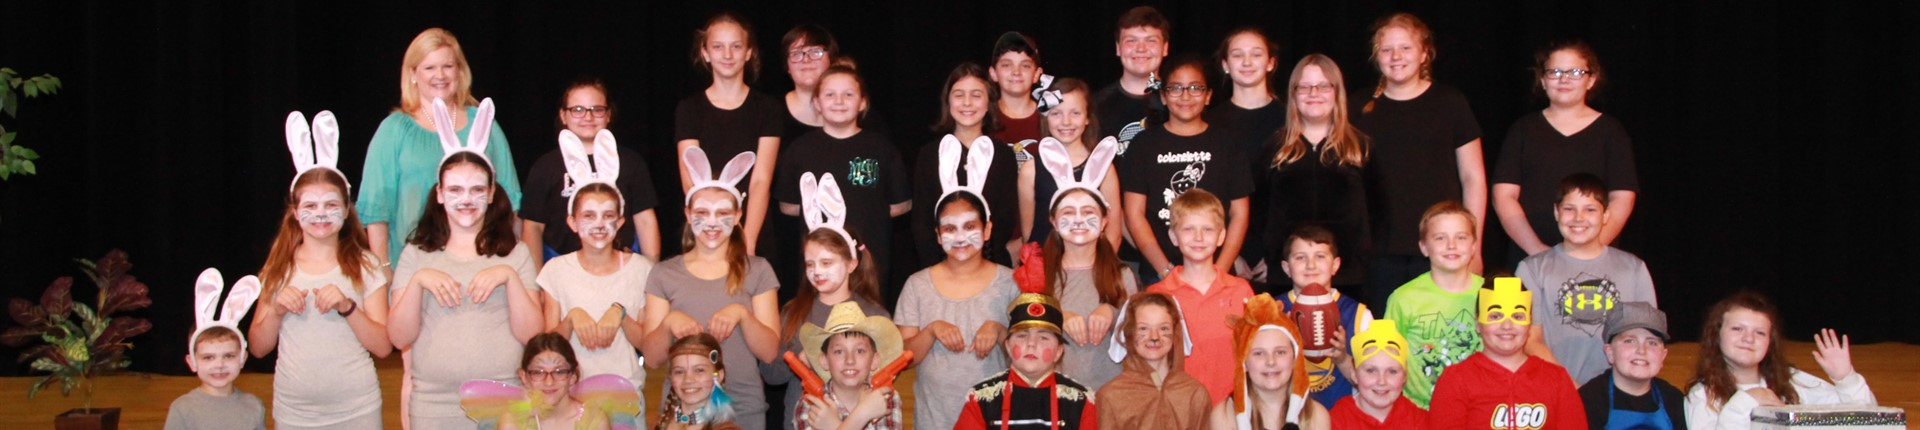 "Cane Ridge Elementary play ""The Velveteen Rabbit"""